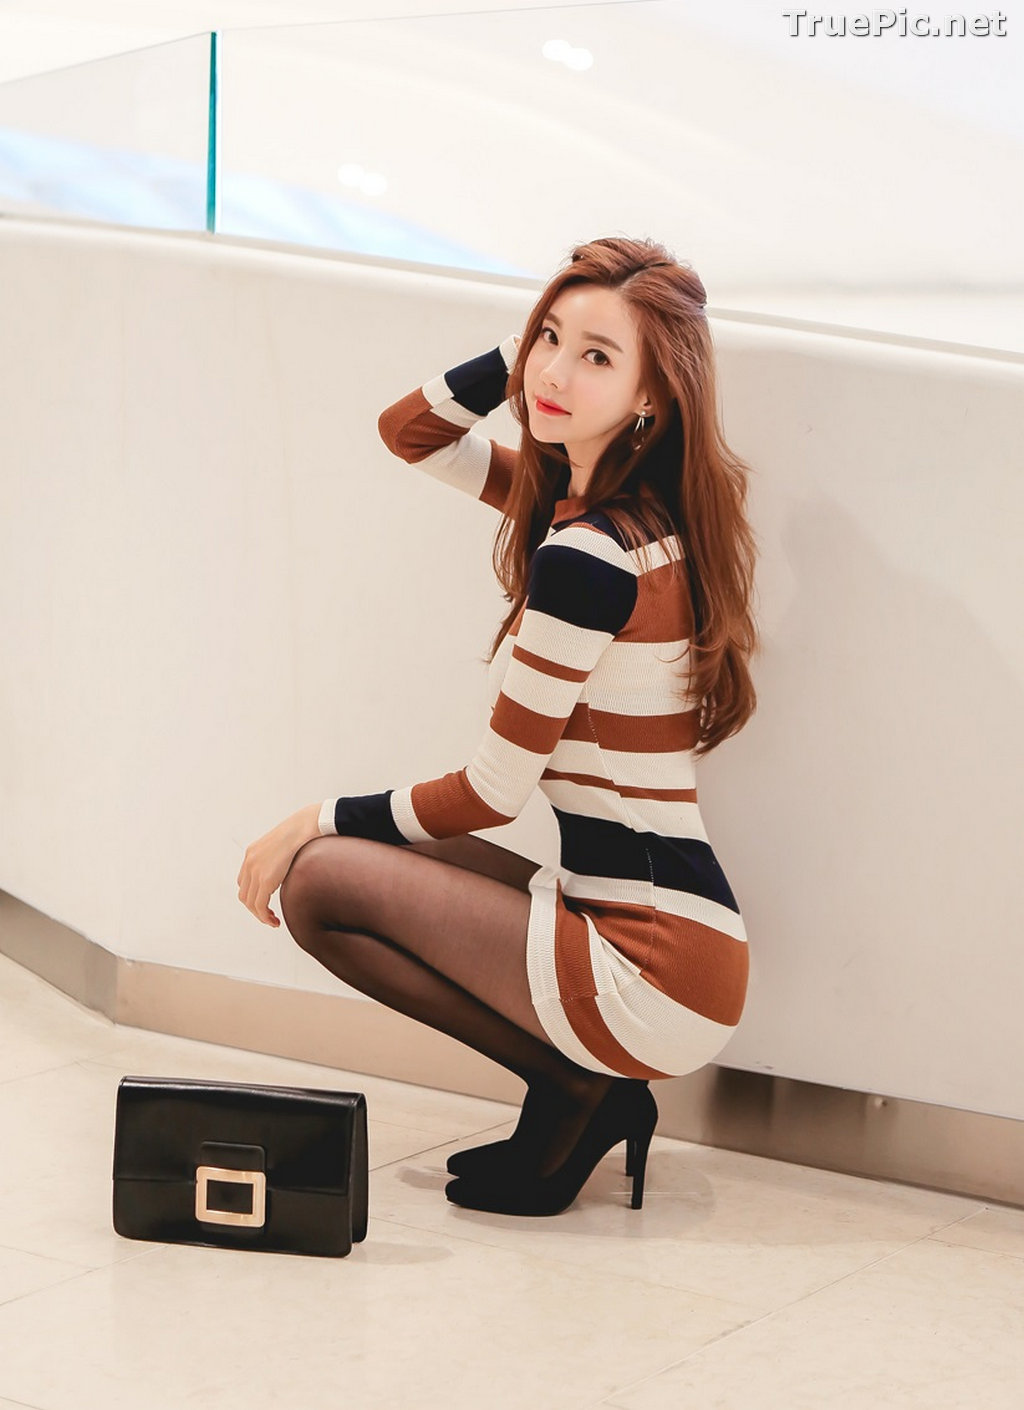 Image Korean Fashion Model – Hyemi – Office Dress Collection #2 - TruePic.net - Picture-4